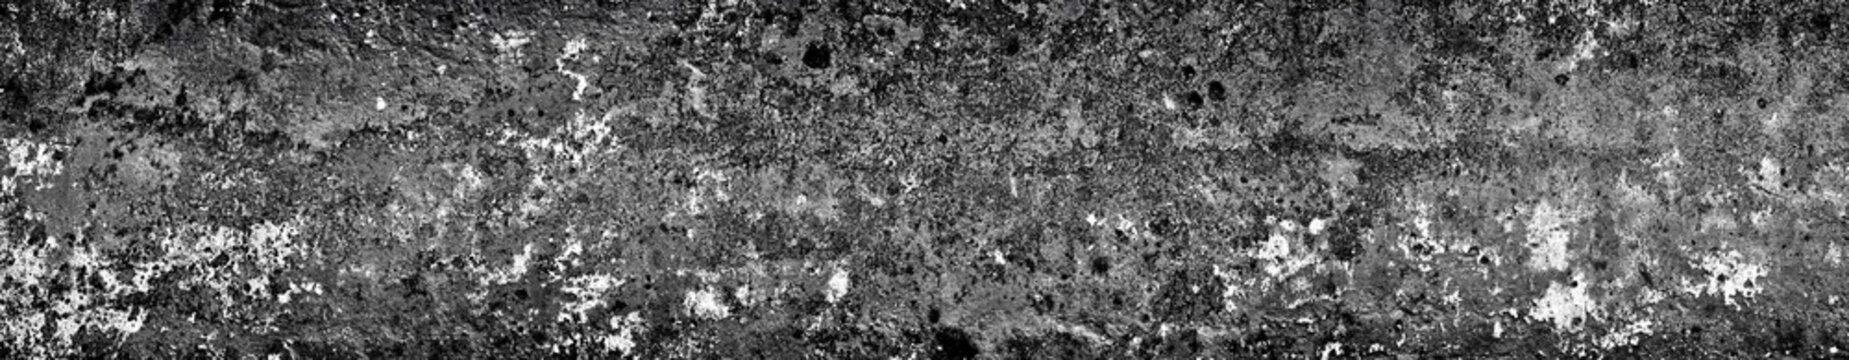 Ancient wall with peeling plaster. Old concrete wall, panoramic textured background grey color, monochrome, vignette